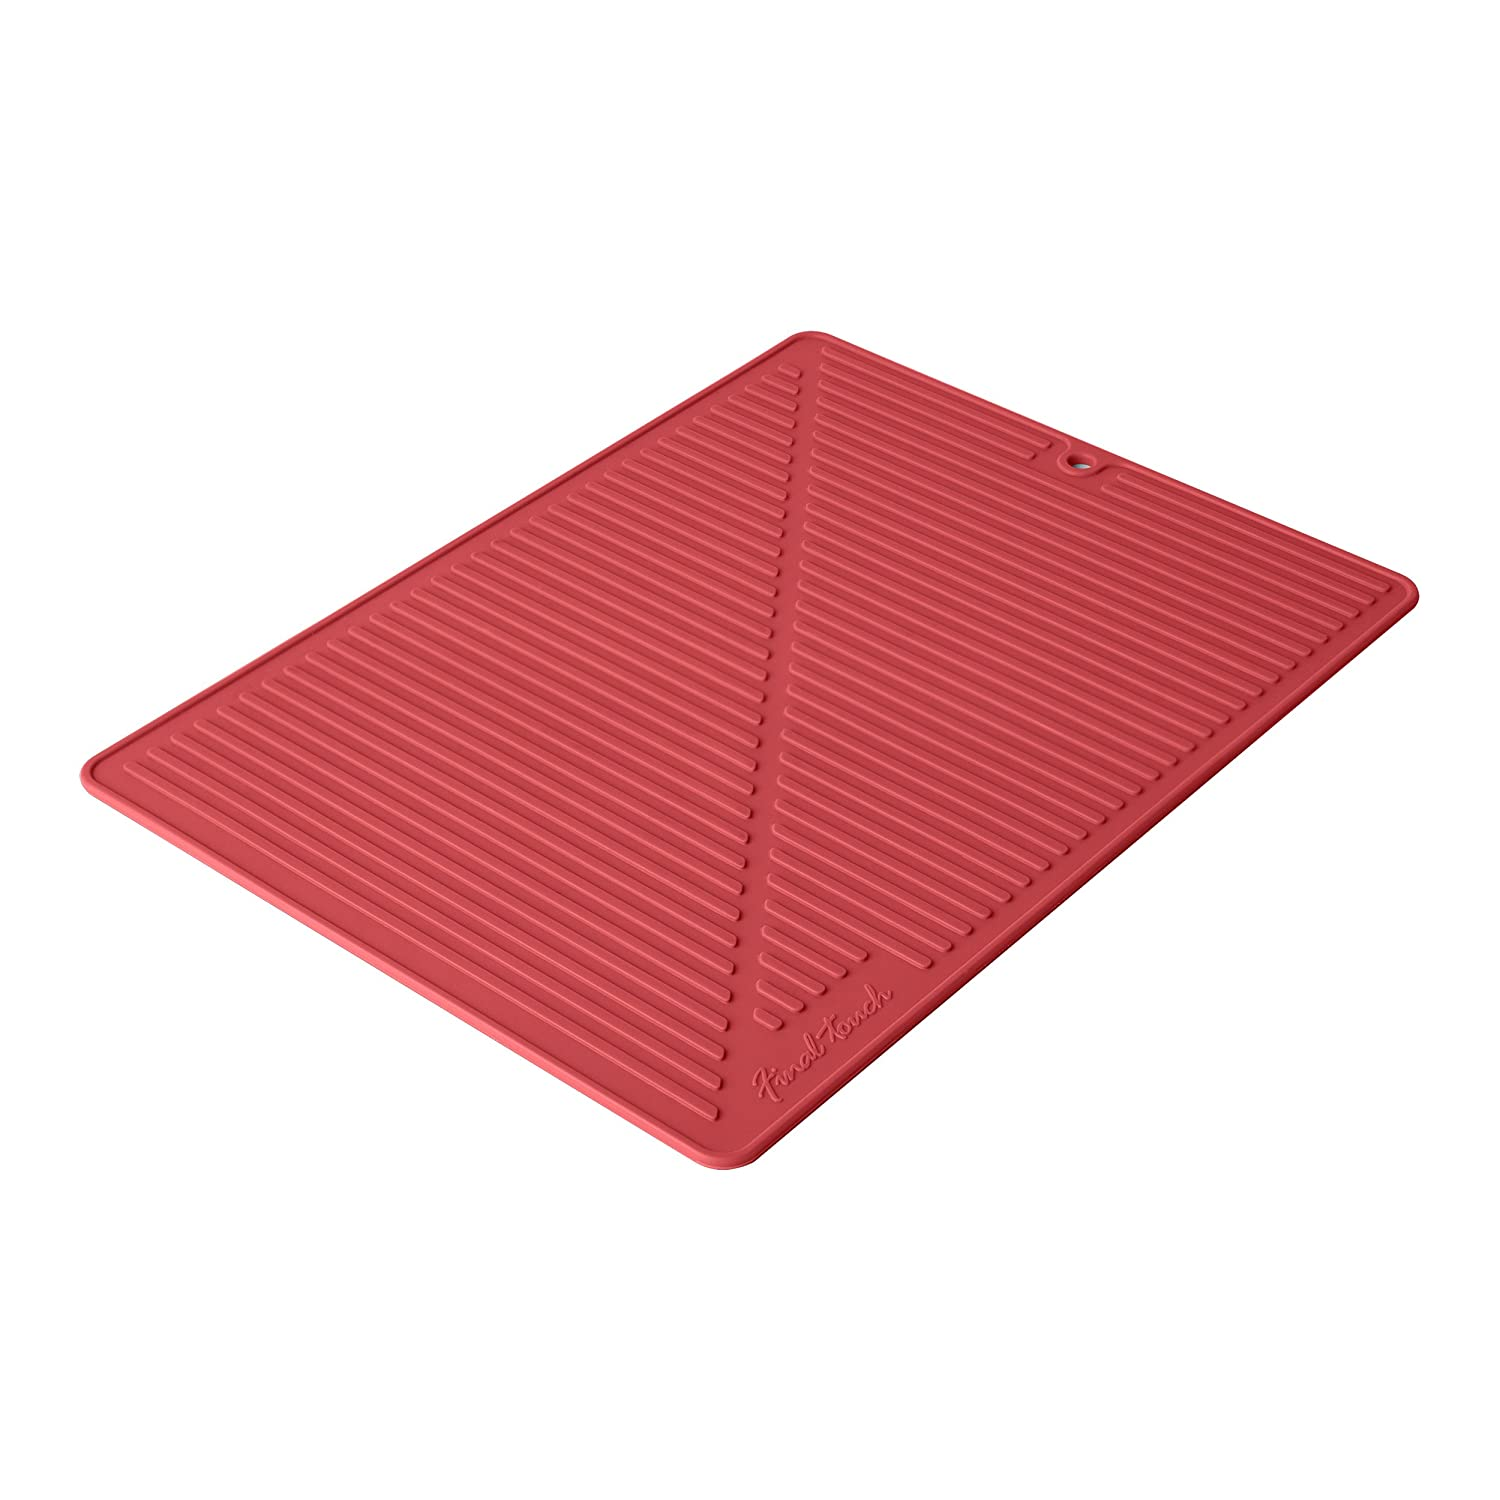 Final Touch FTA1880-7 Silicone Glass Drying Mat, Black Product Specialties